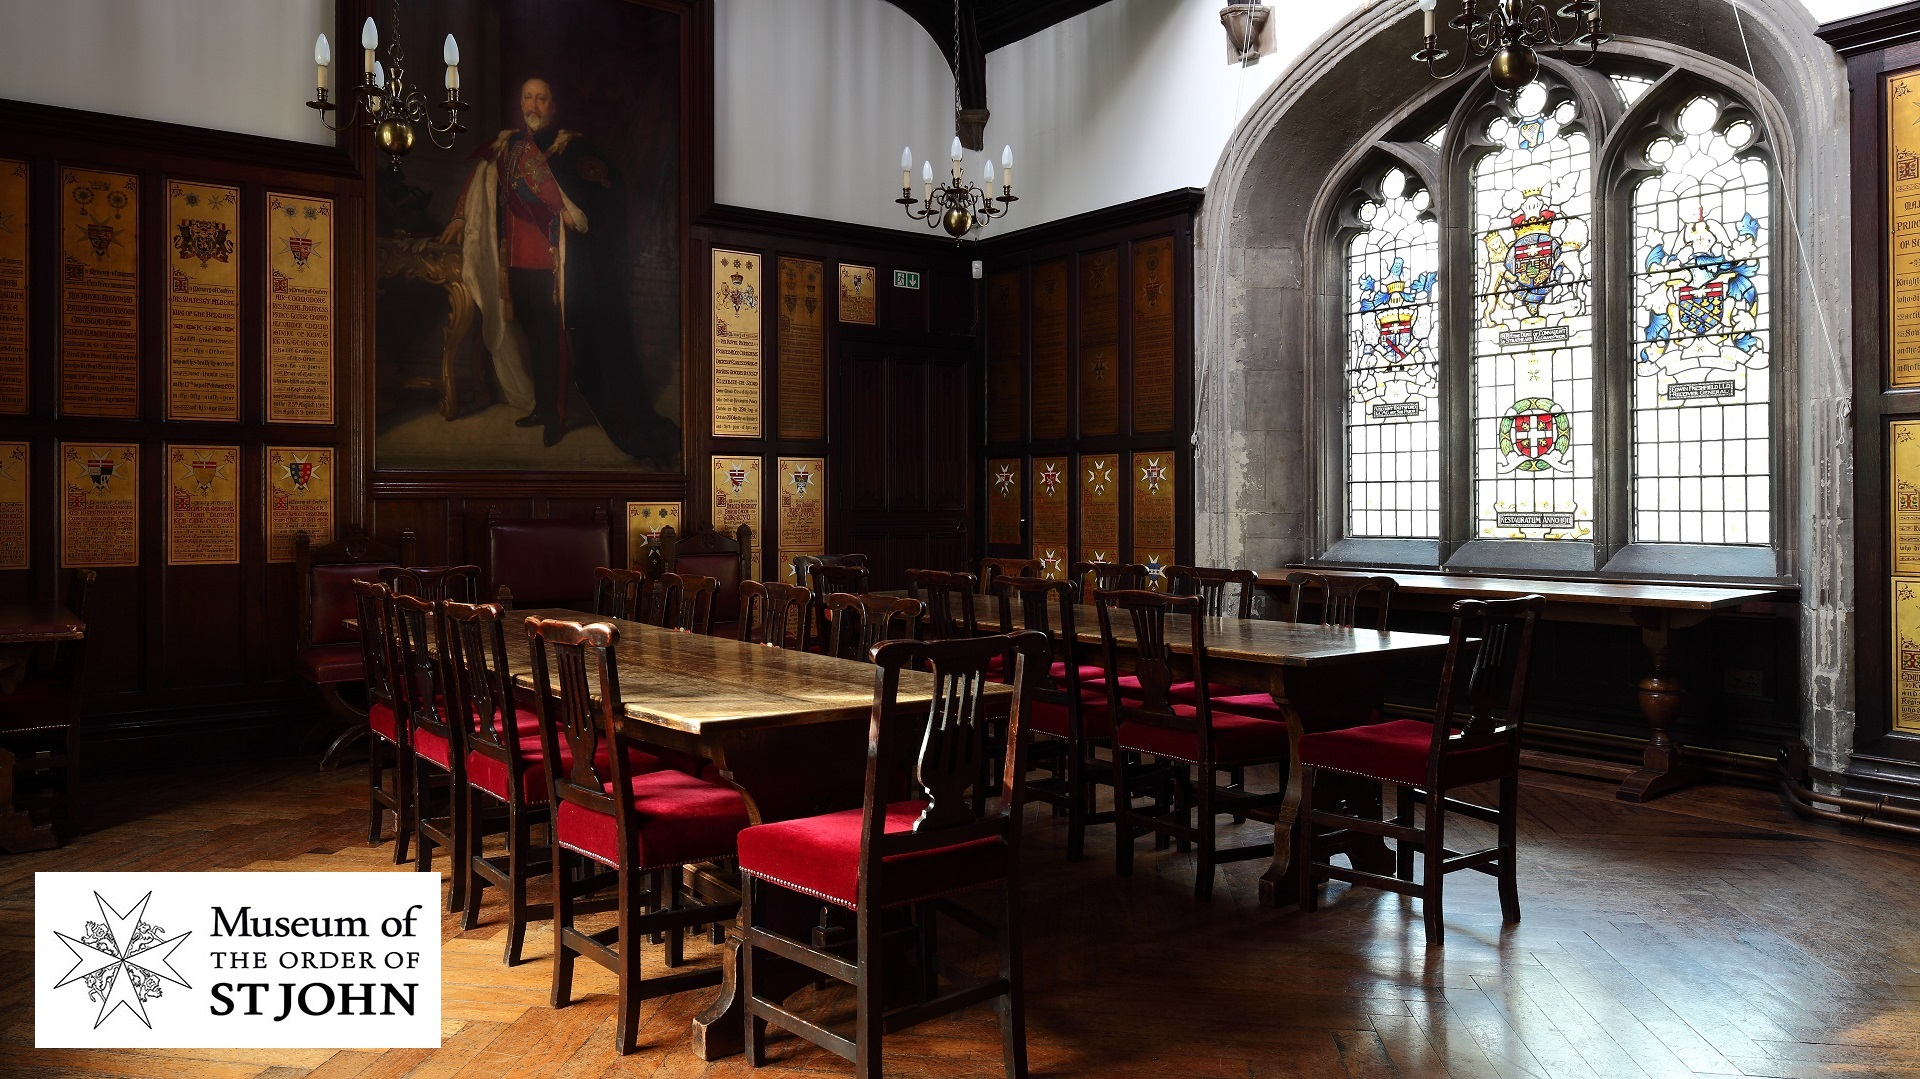 Photograph of a panelled room with a portrait oil painting on one wall and stained glass windows in another.